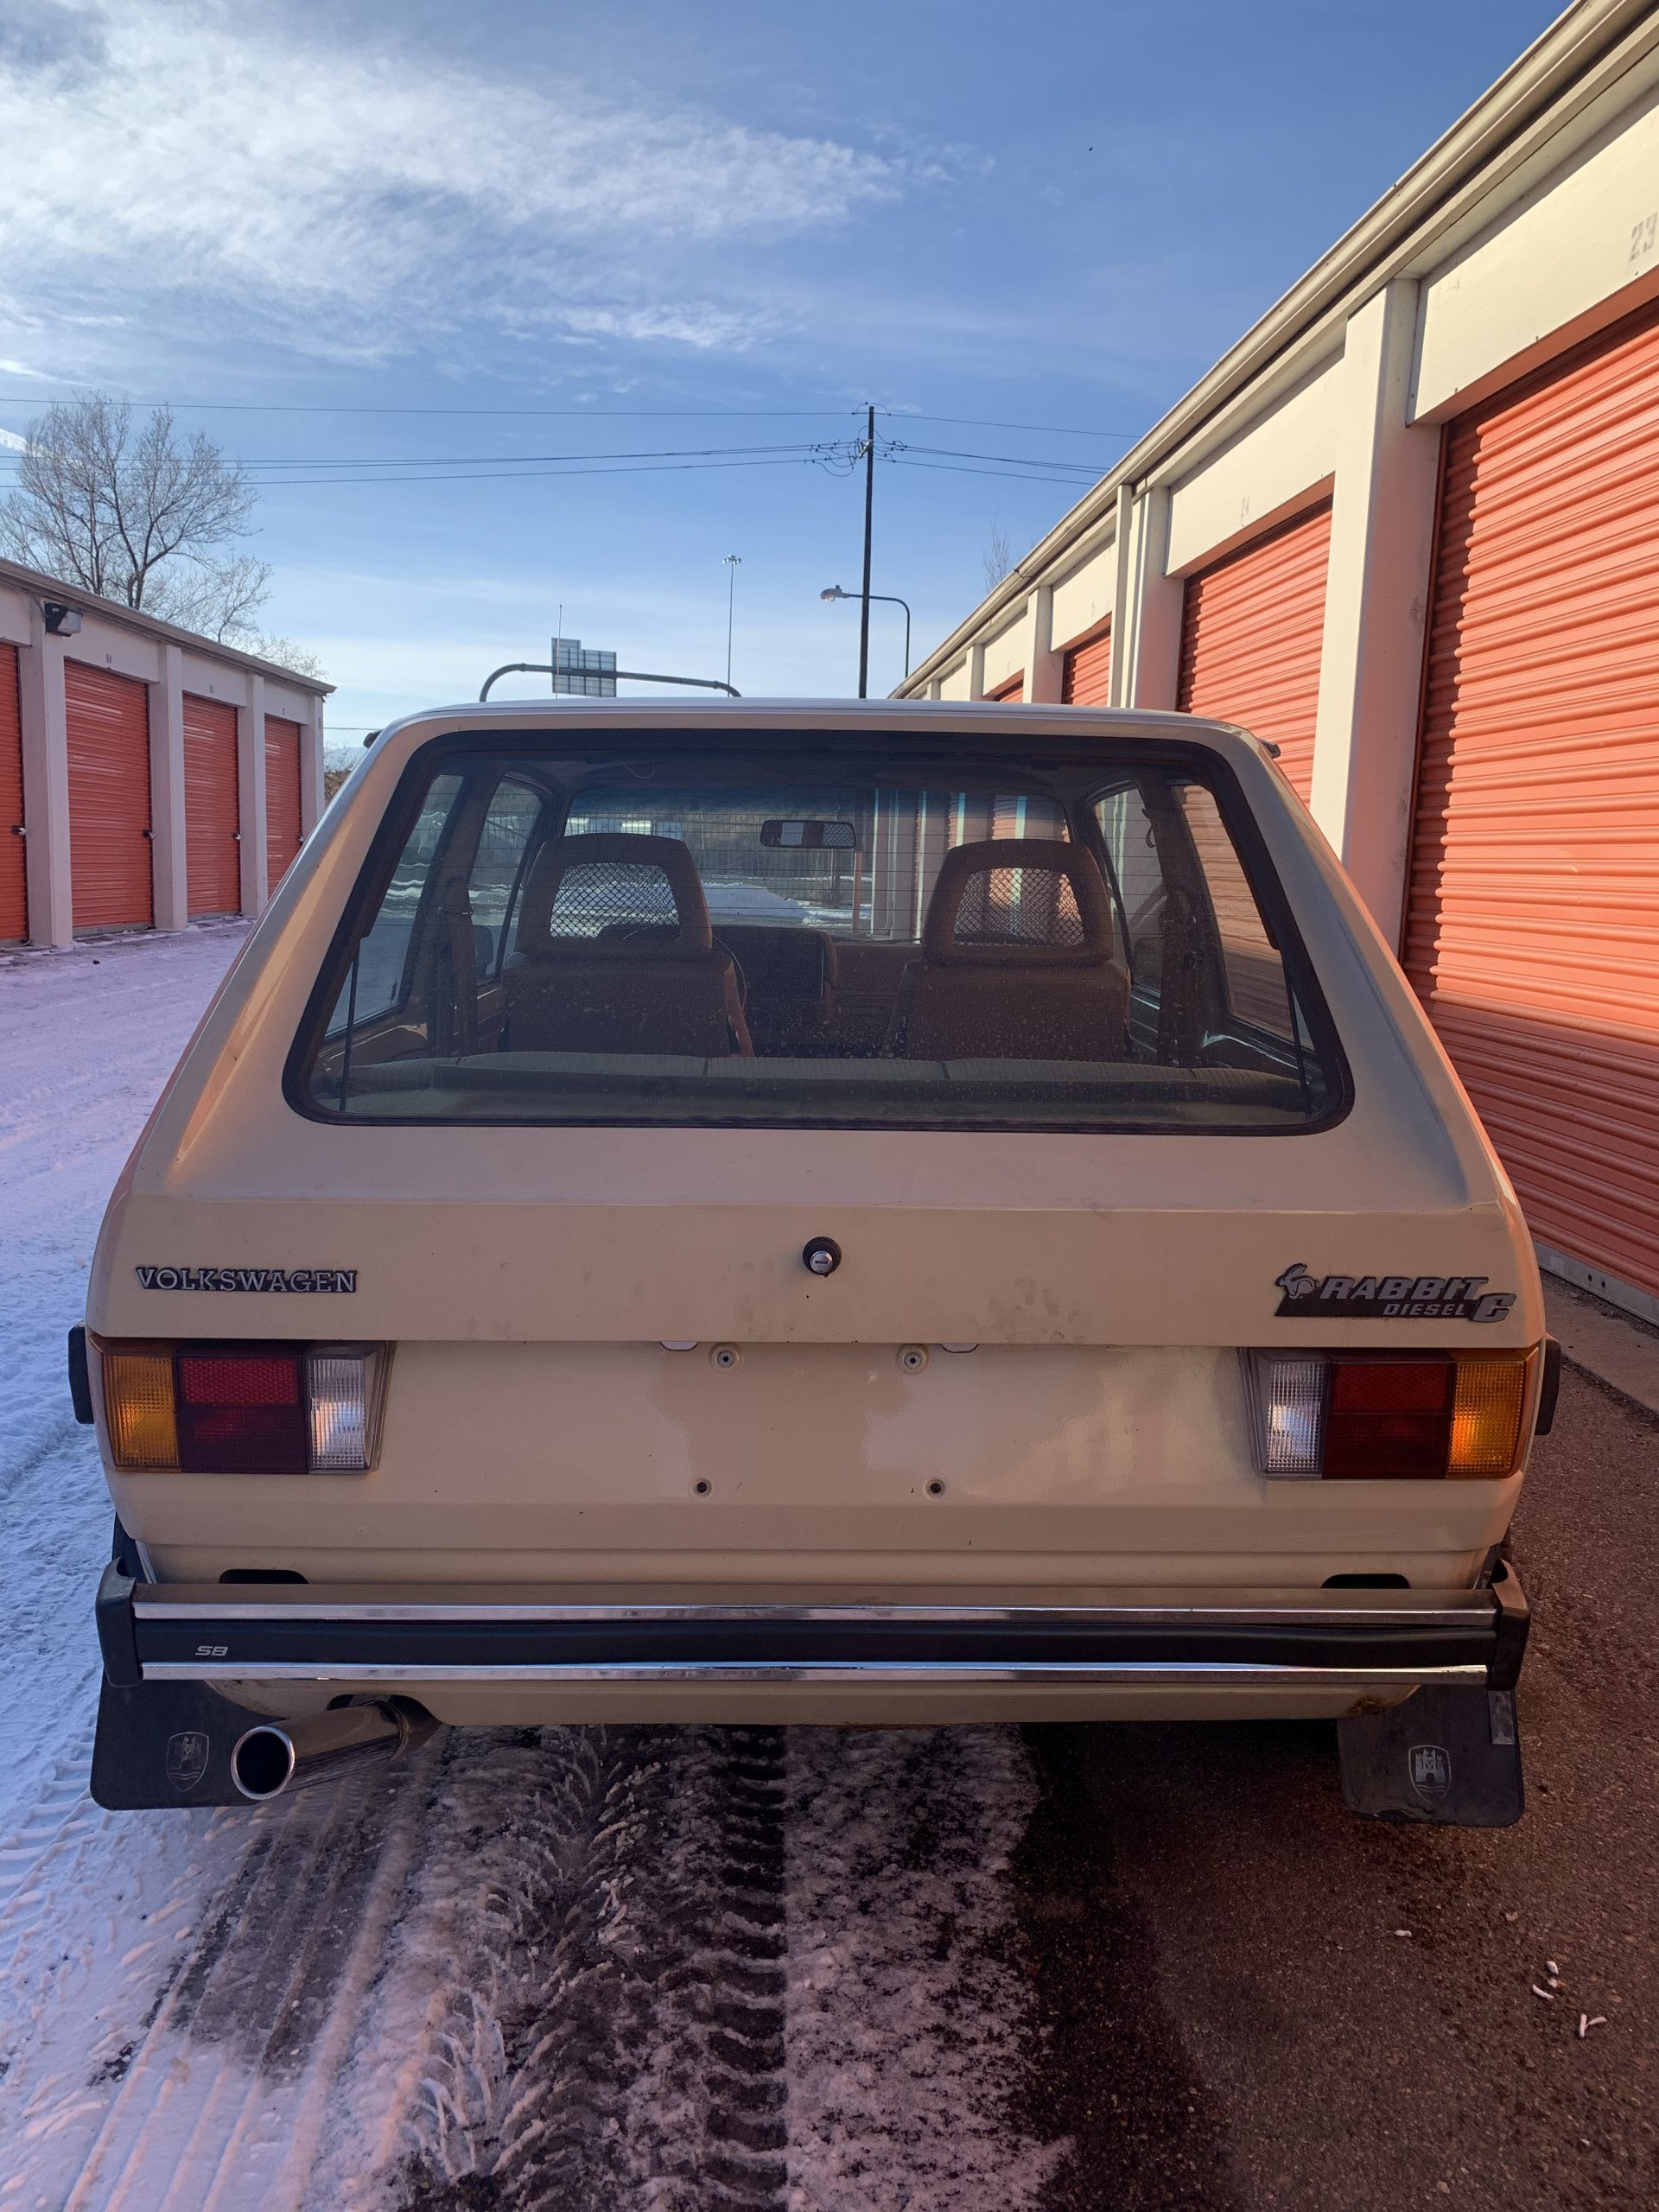 1980 VW Rabbit TDI swap rear Dec 13, 3 09 58 PM